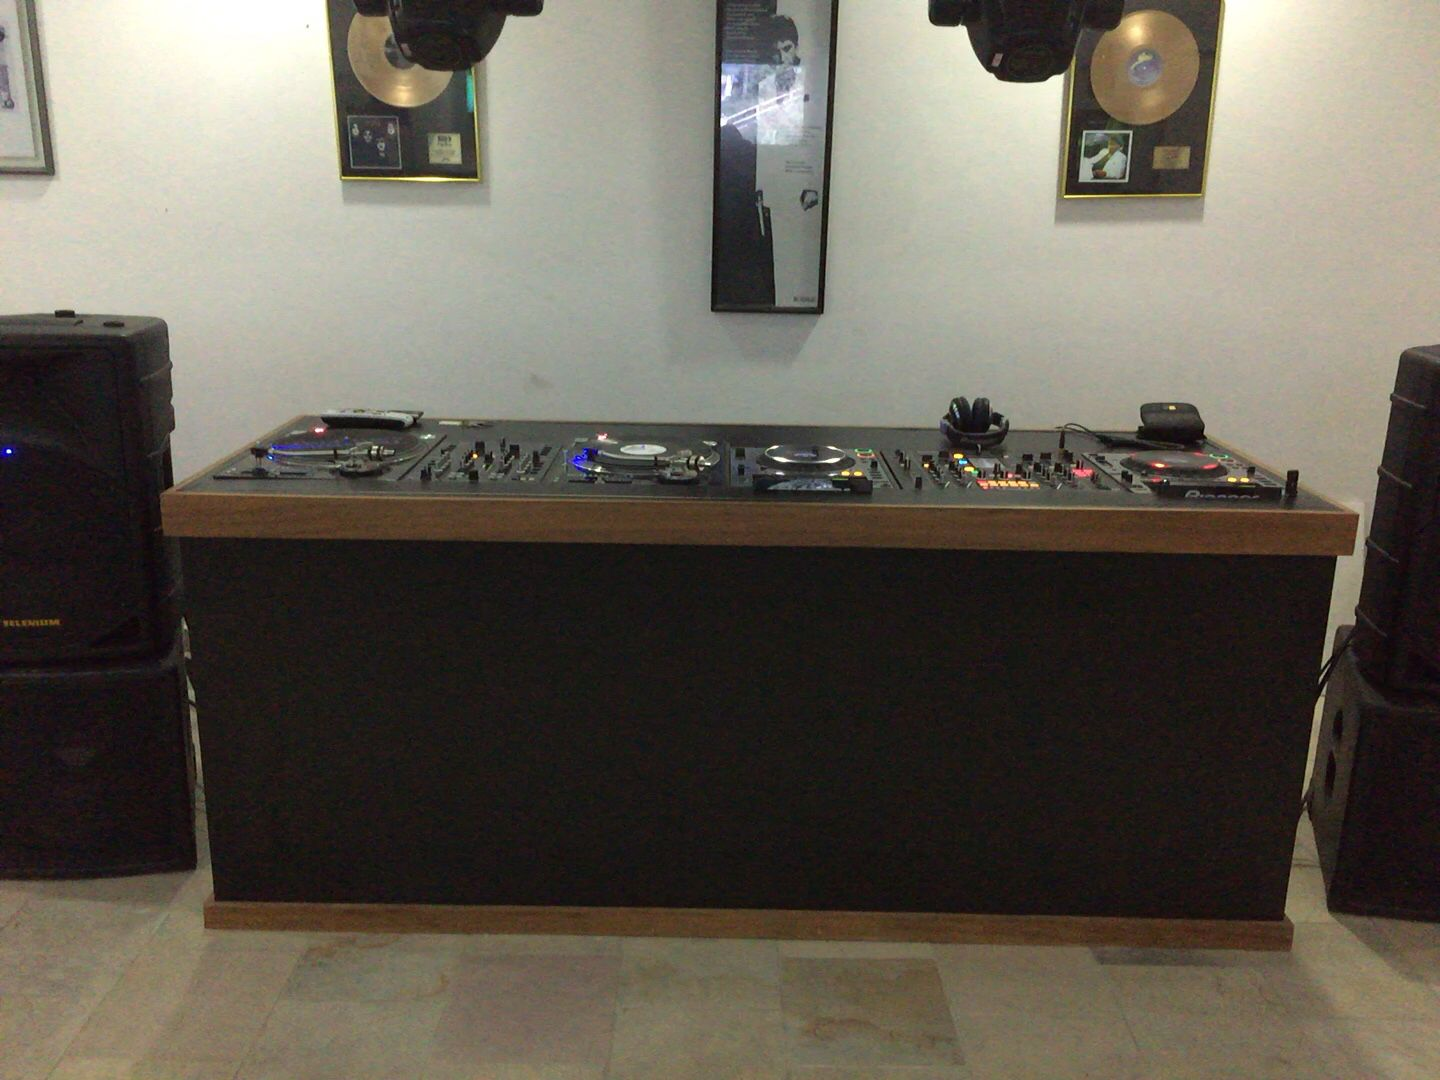 Dj Booth For Sale >> My home dj booth | club in 2019 | Dj equipment for sale ...